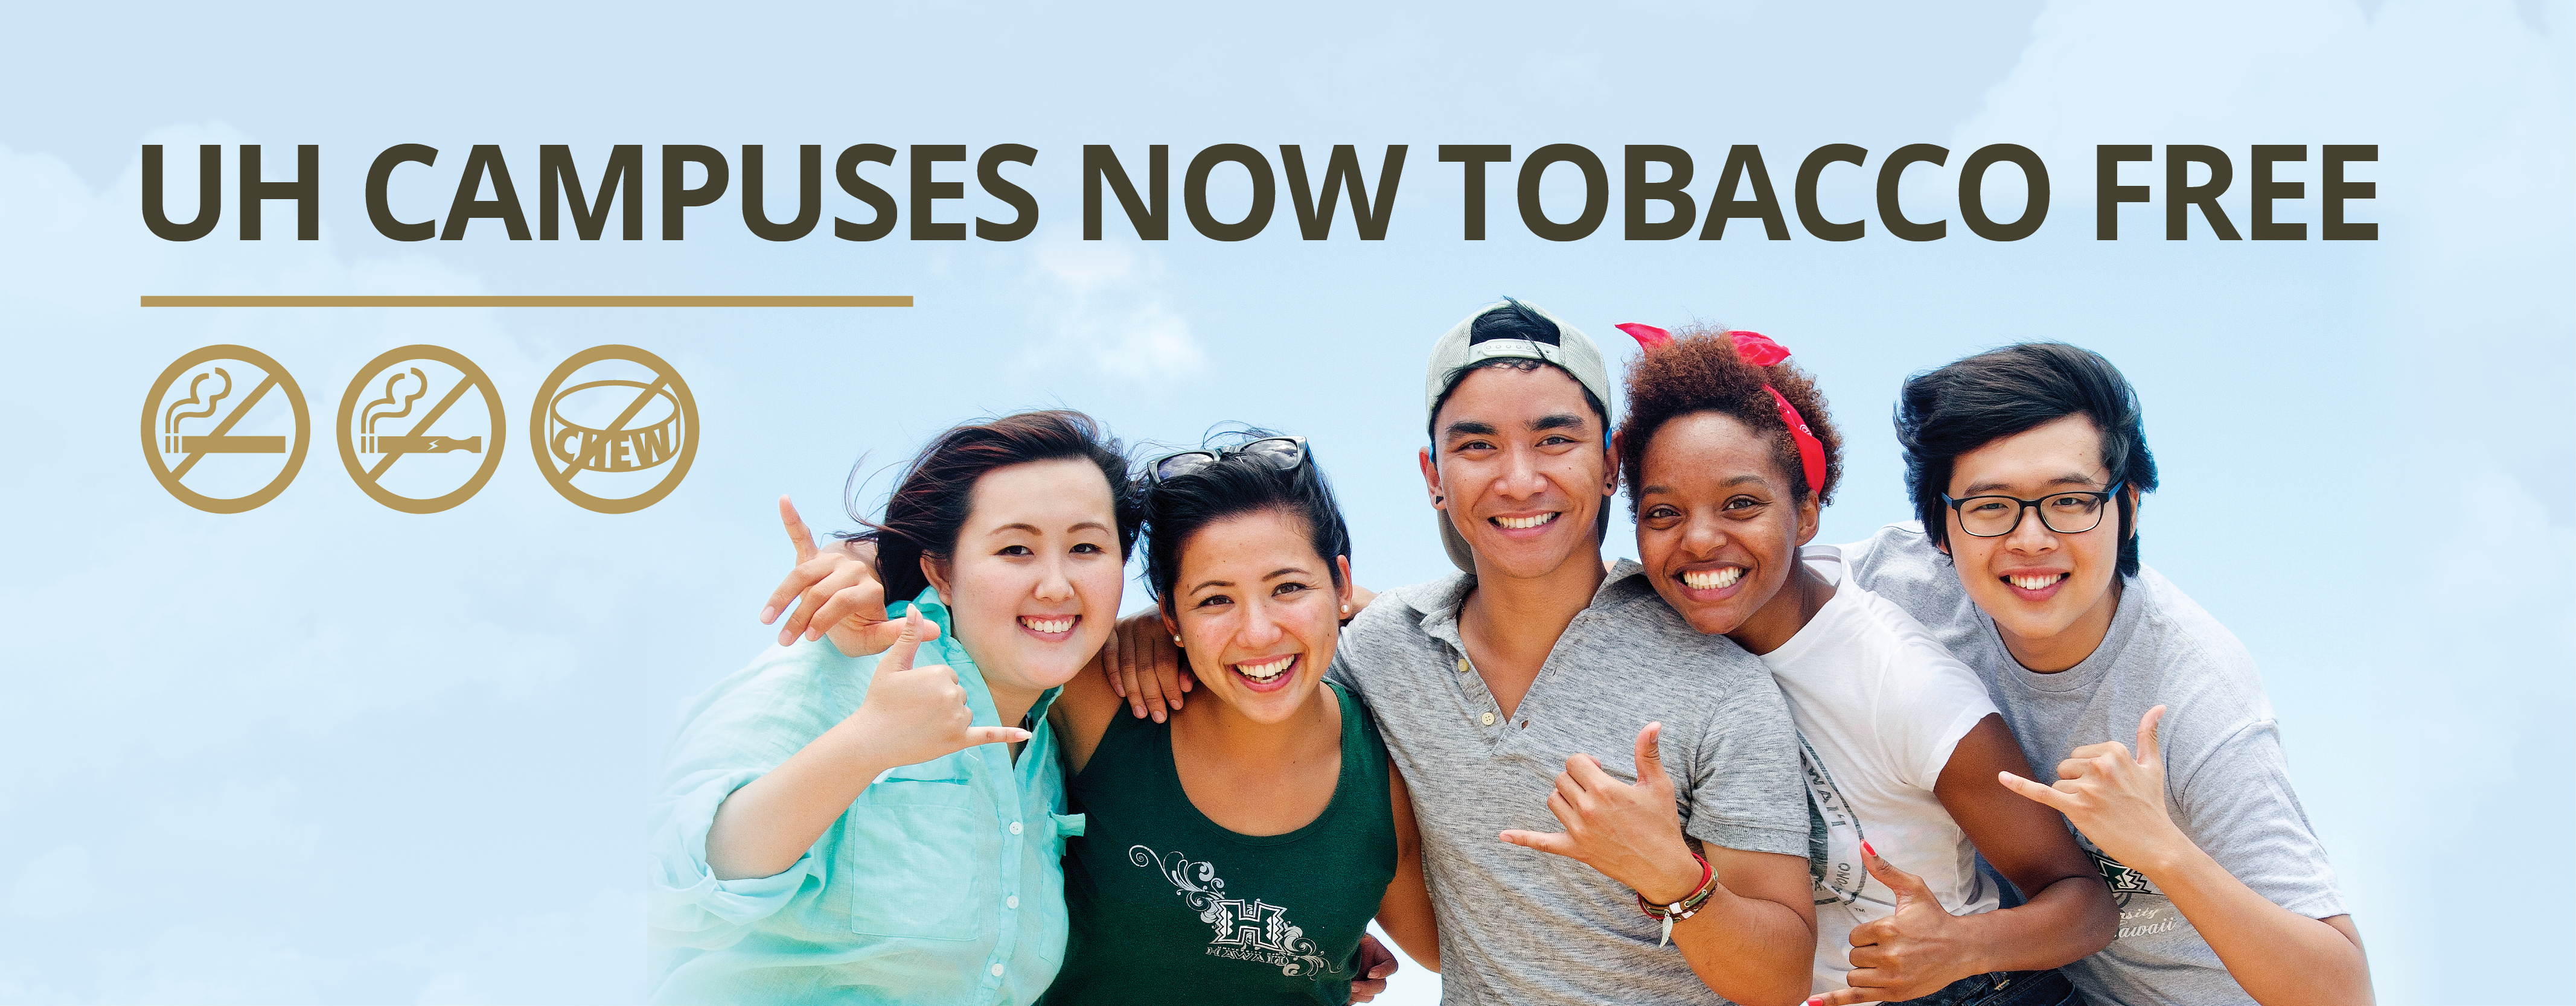 U H Campuses now tobacco free, students flashing shaka, no smoking, vaping and chewing icons